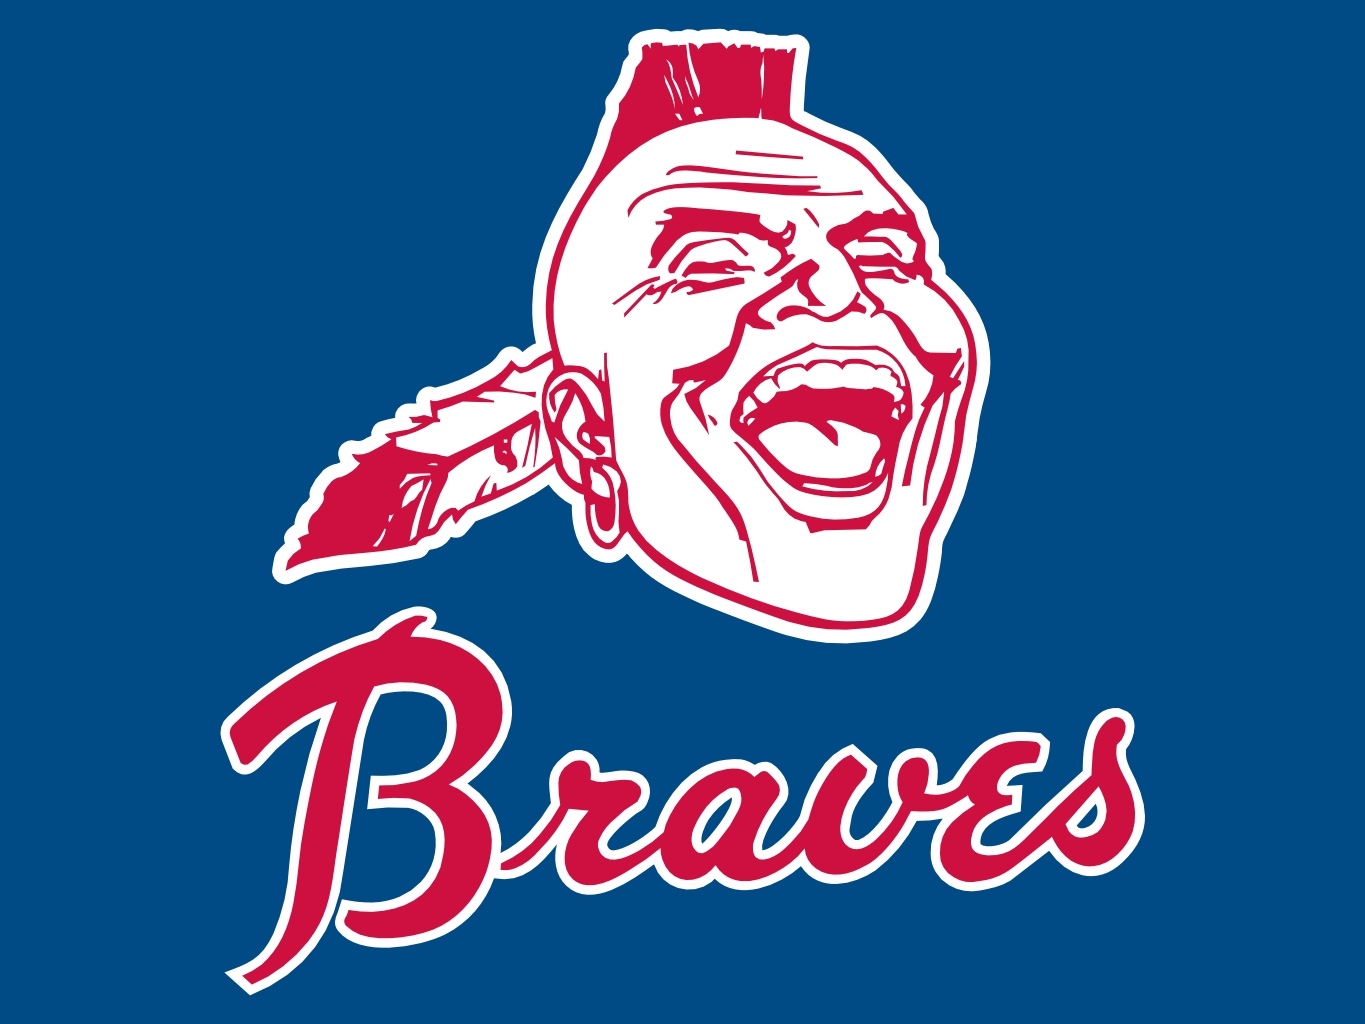 Phillies Iphone Wallpaper Atlanta Braves Wallpaper And Background Image 1365x1024